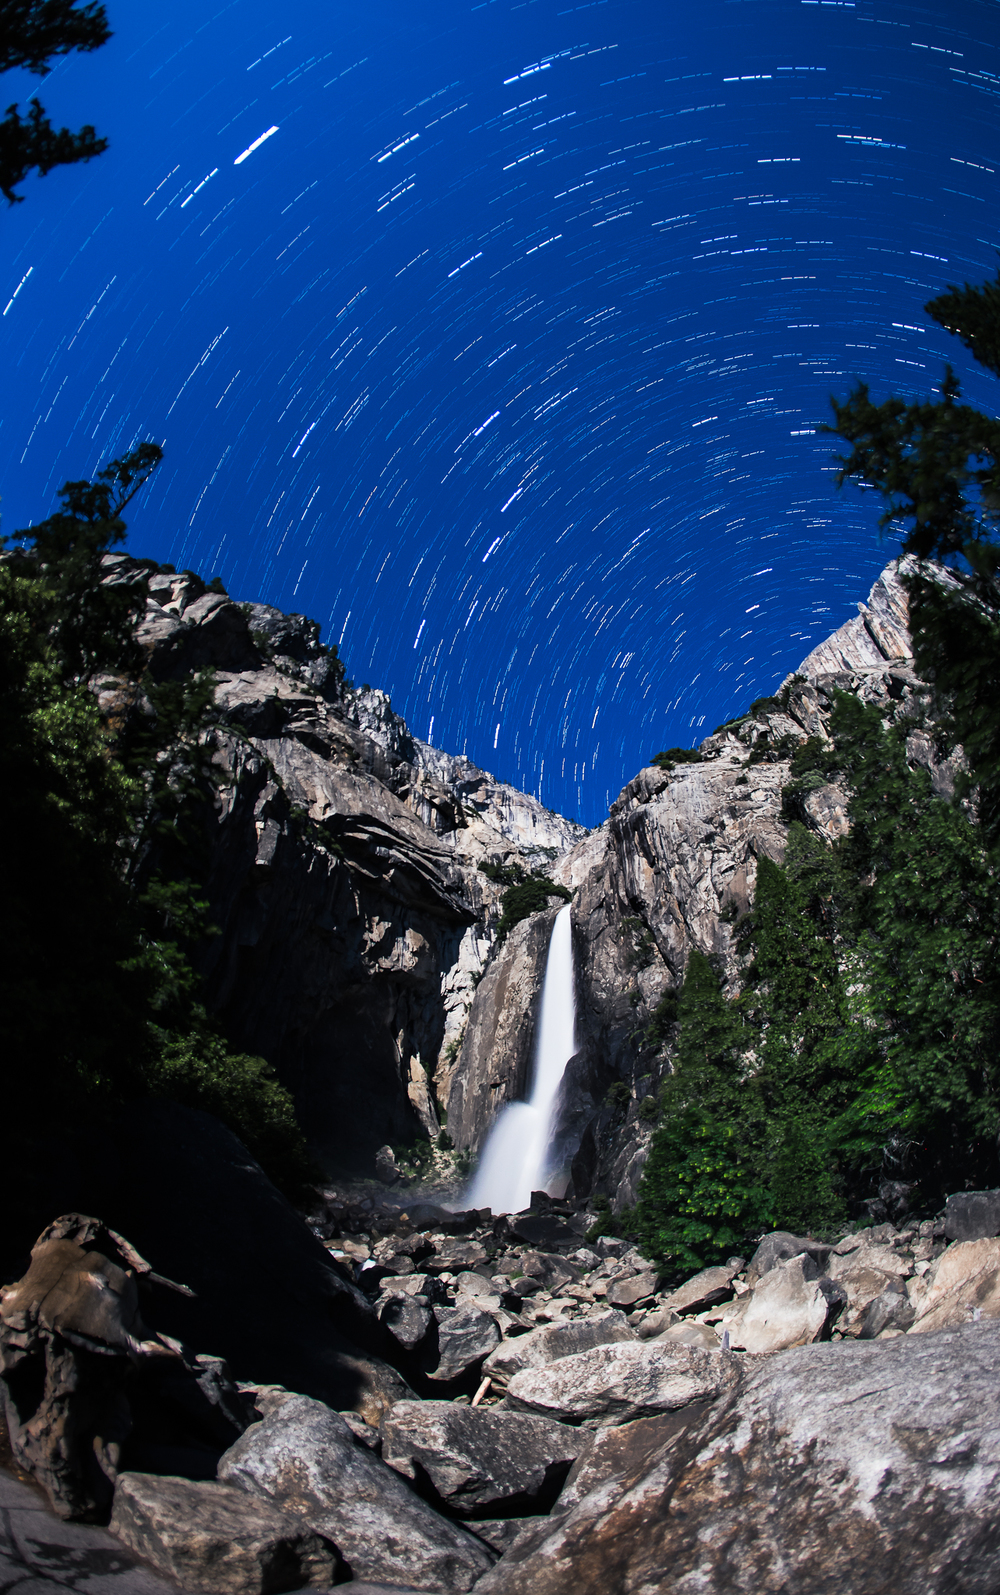 StarStaX_yosemite-9130-yosemite-9160_lighten-Edit.jpg